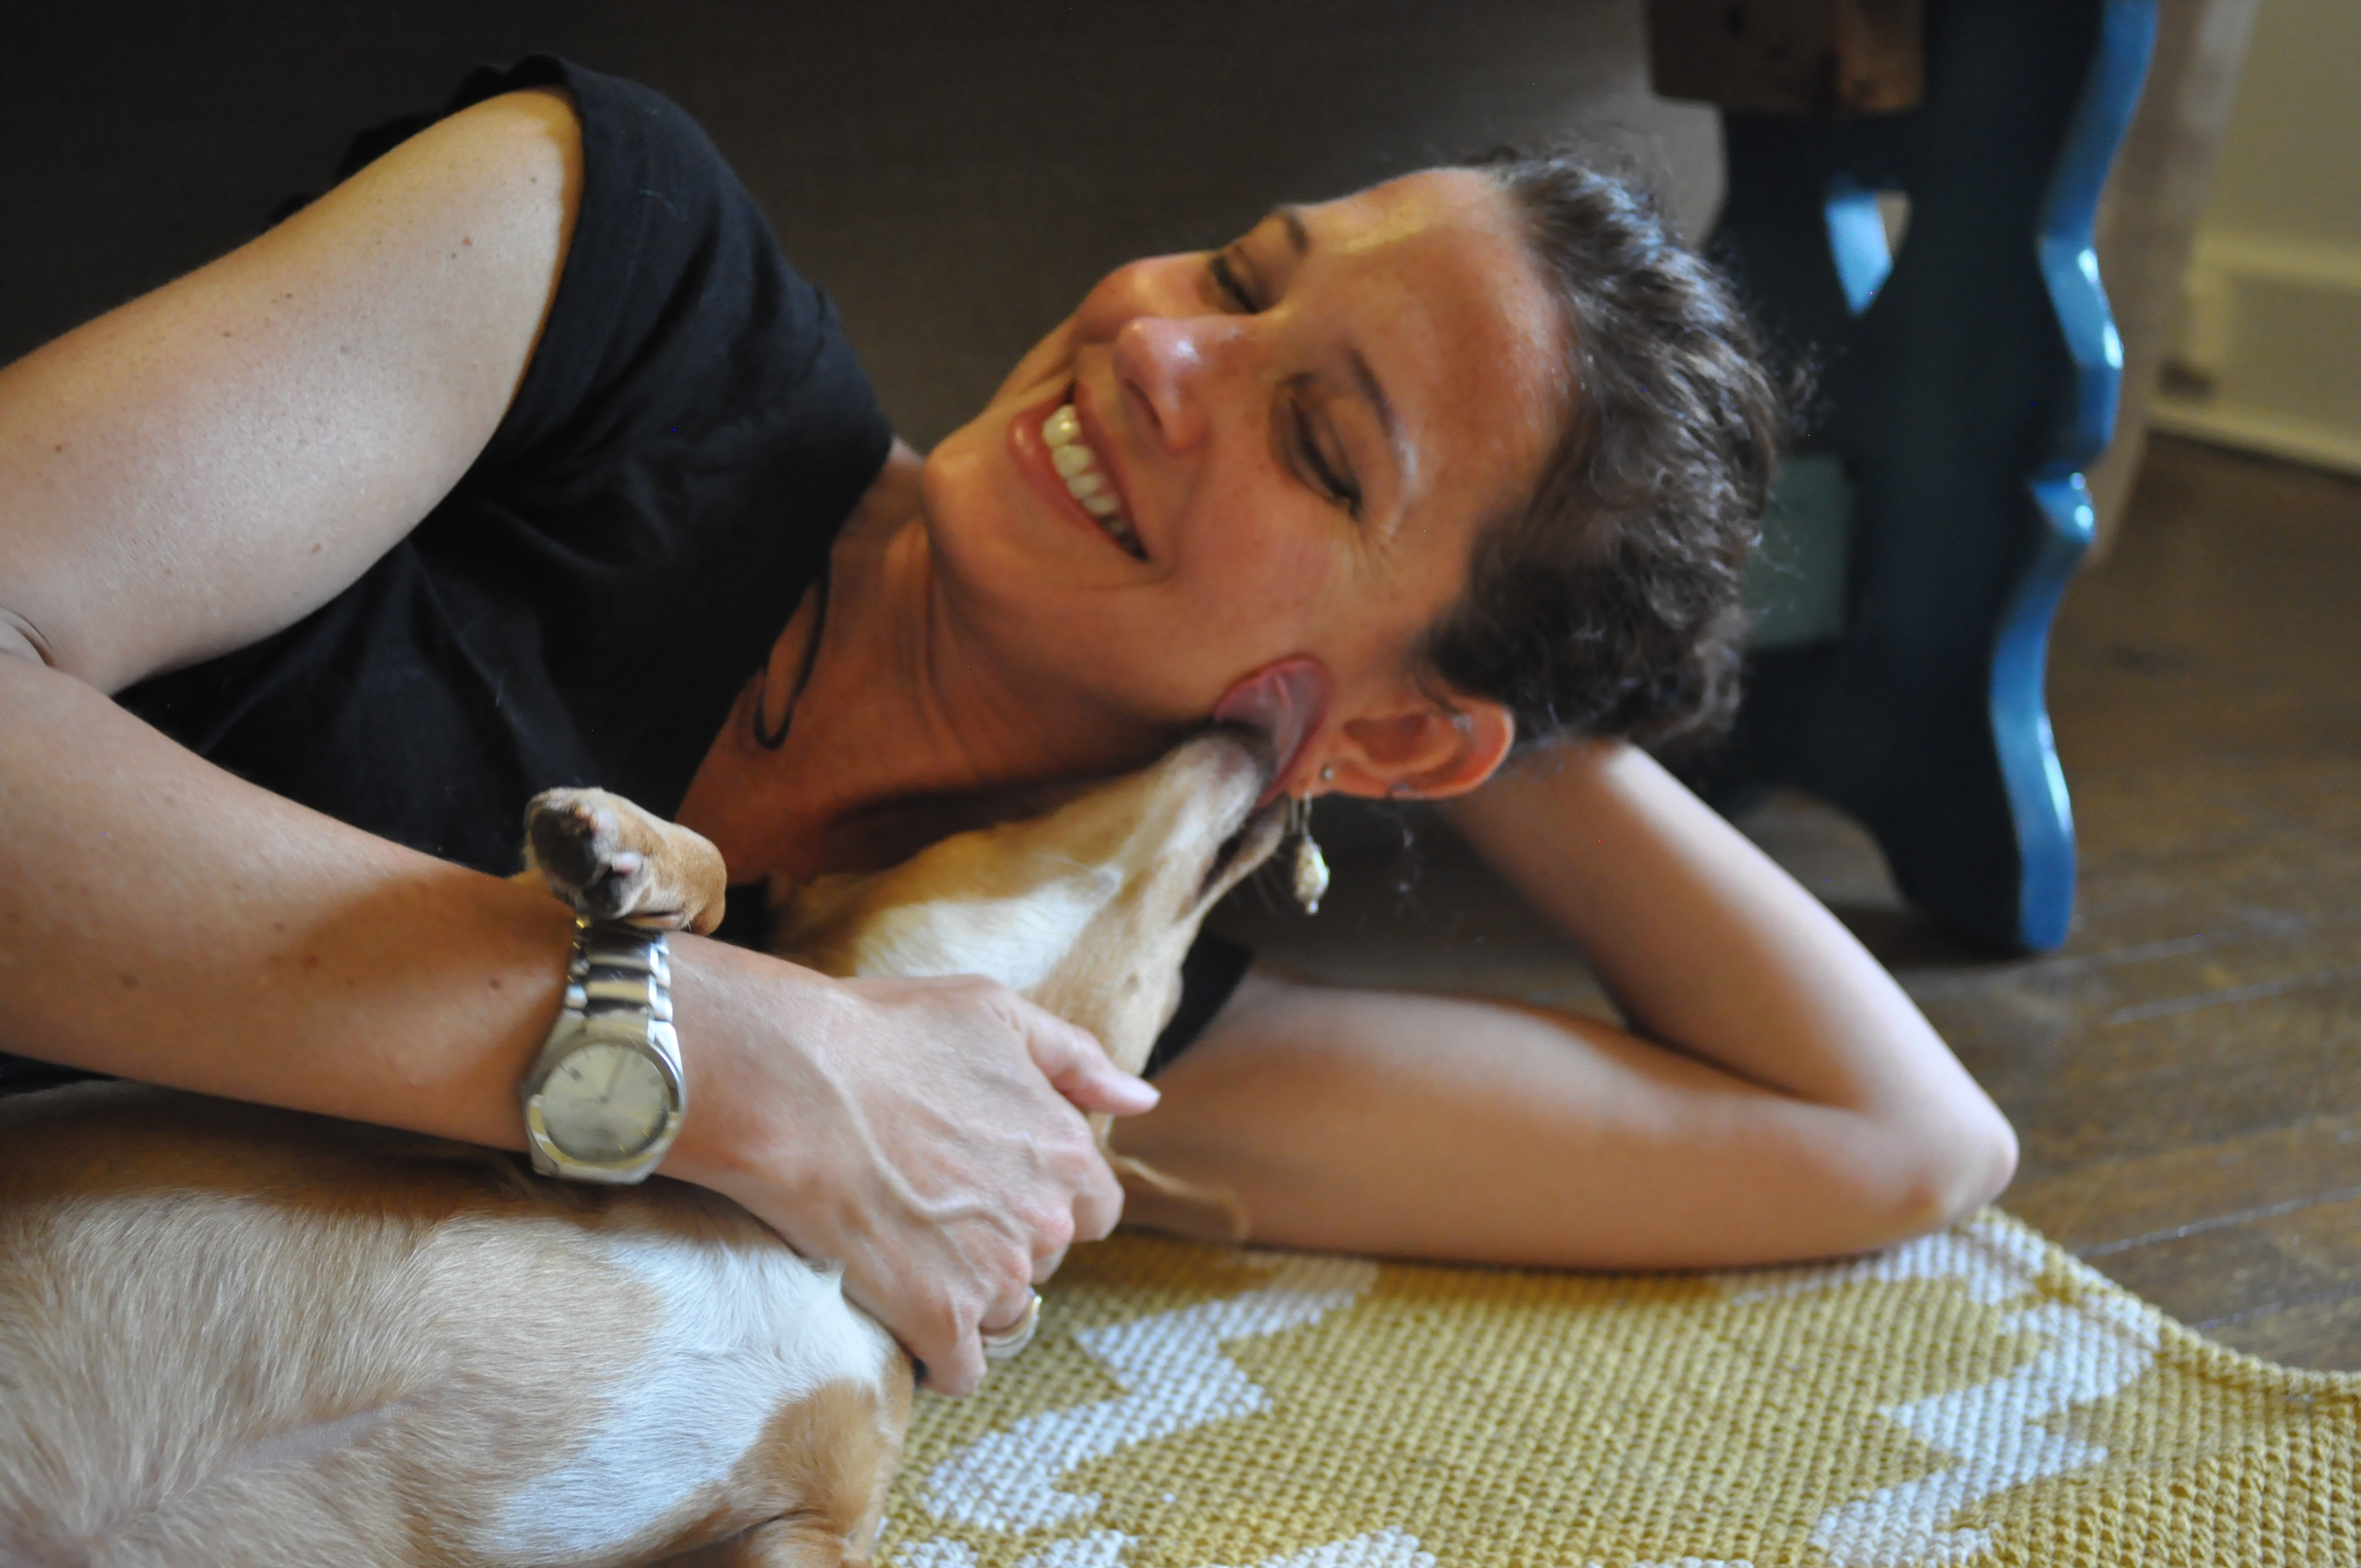 Elena, the adorable dog who was reacued by CAP, hangs out at her new home with PETA staffer Rachel Bellis.